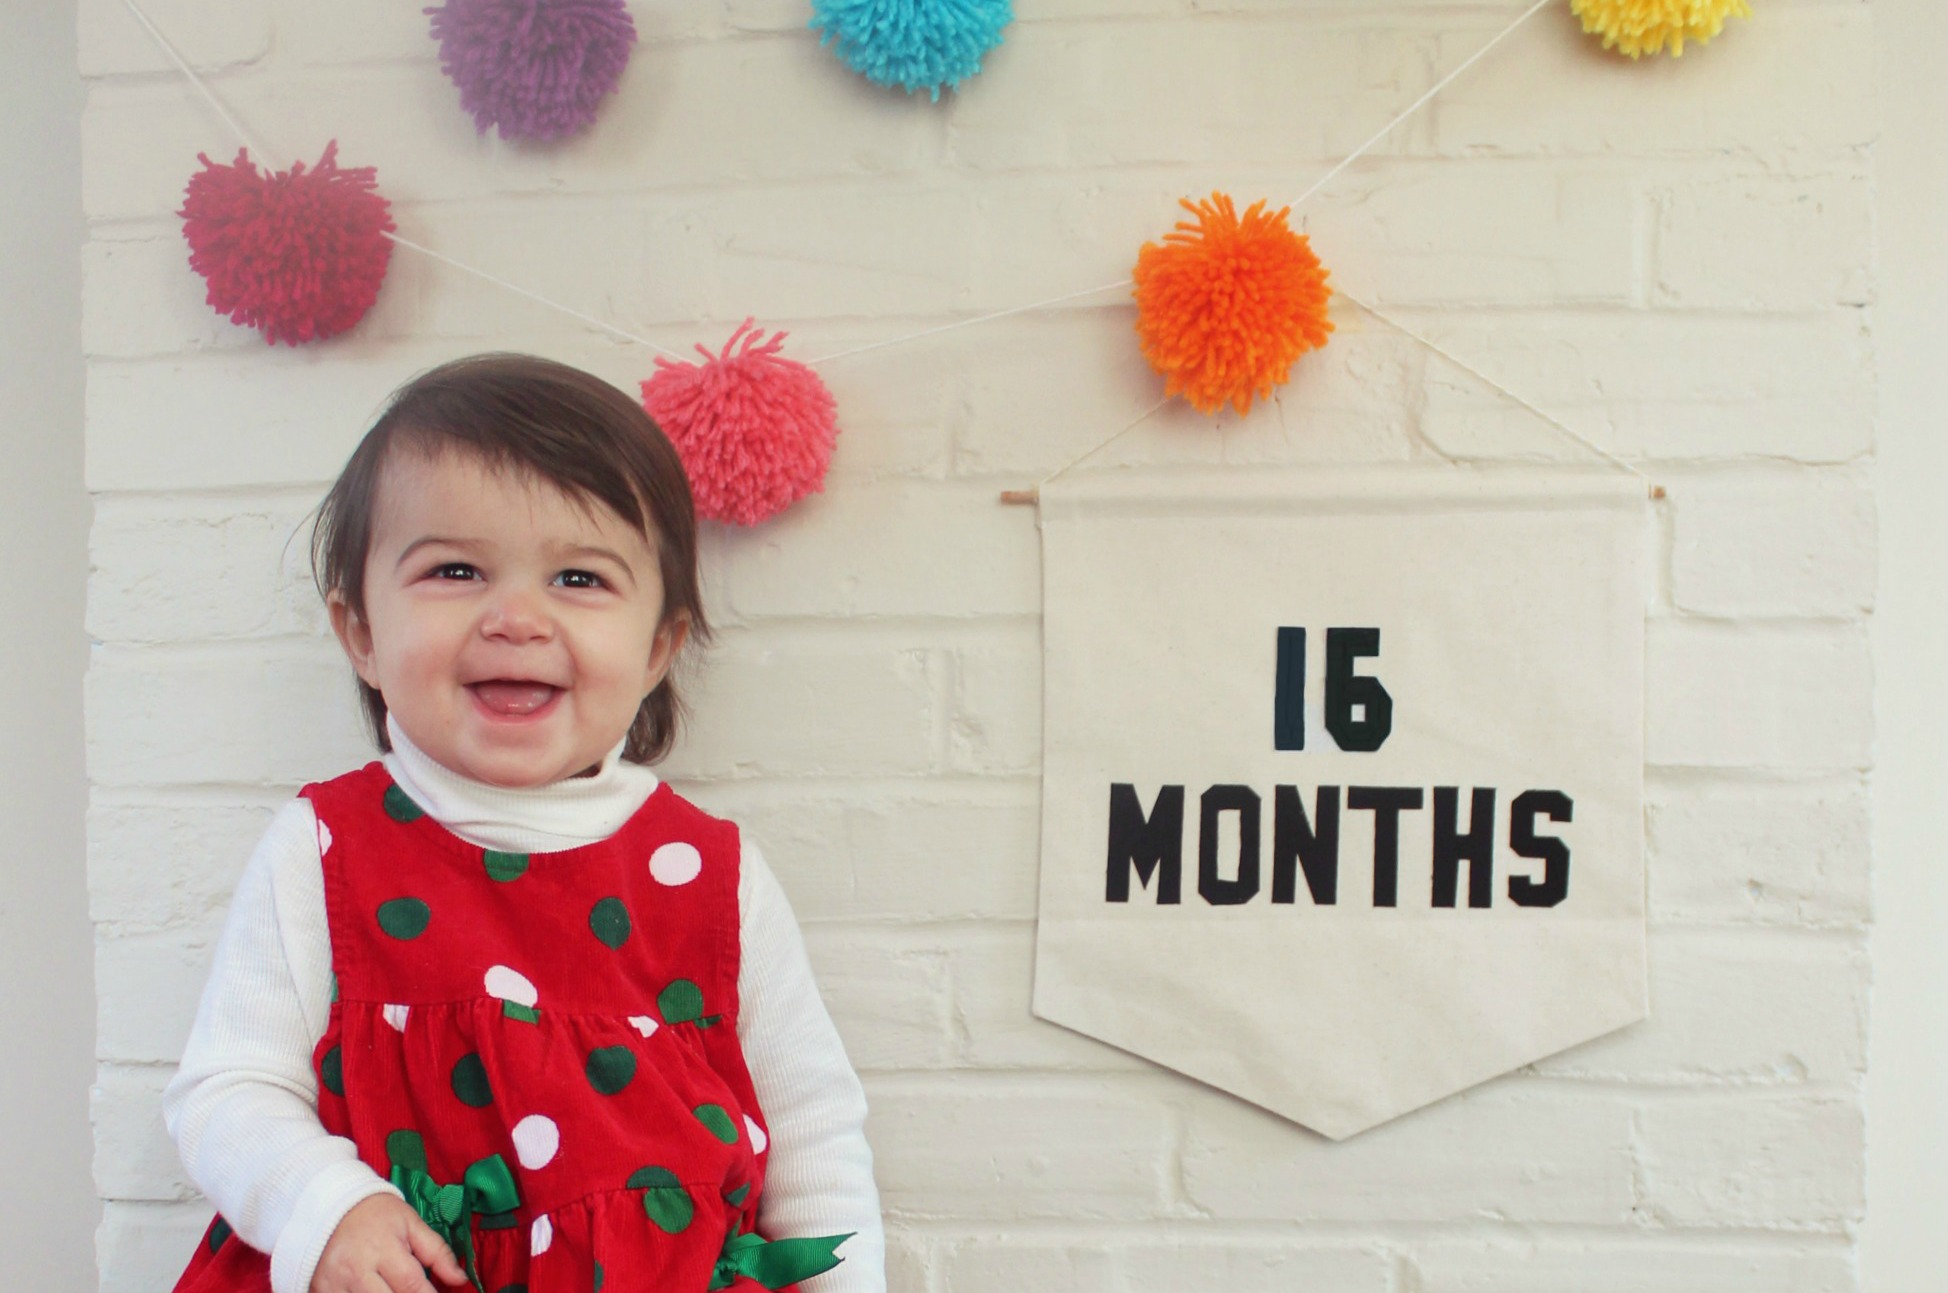 Catching Up With Carmendy {16 Months}